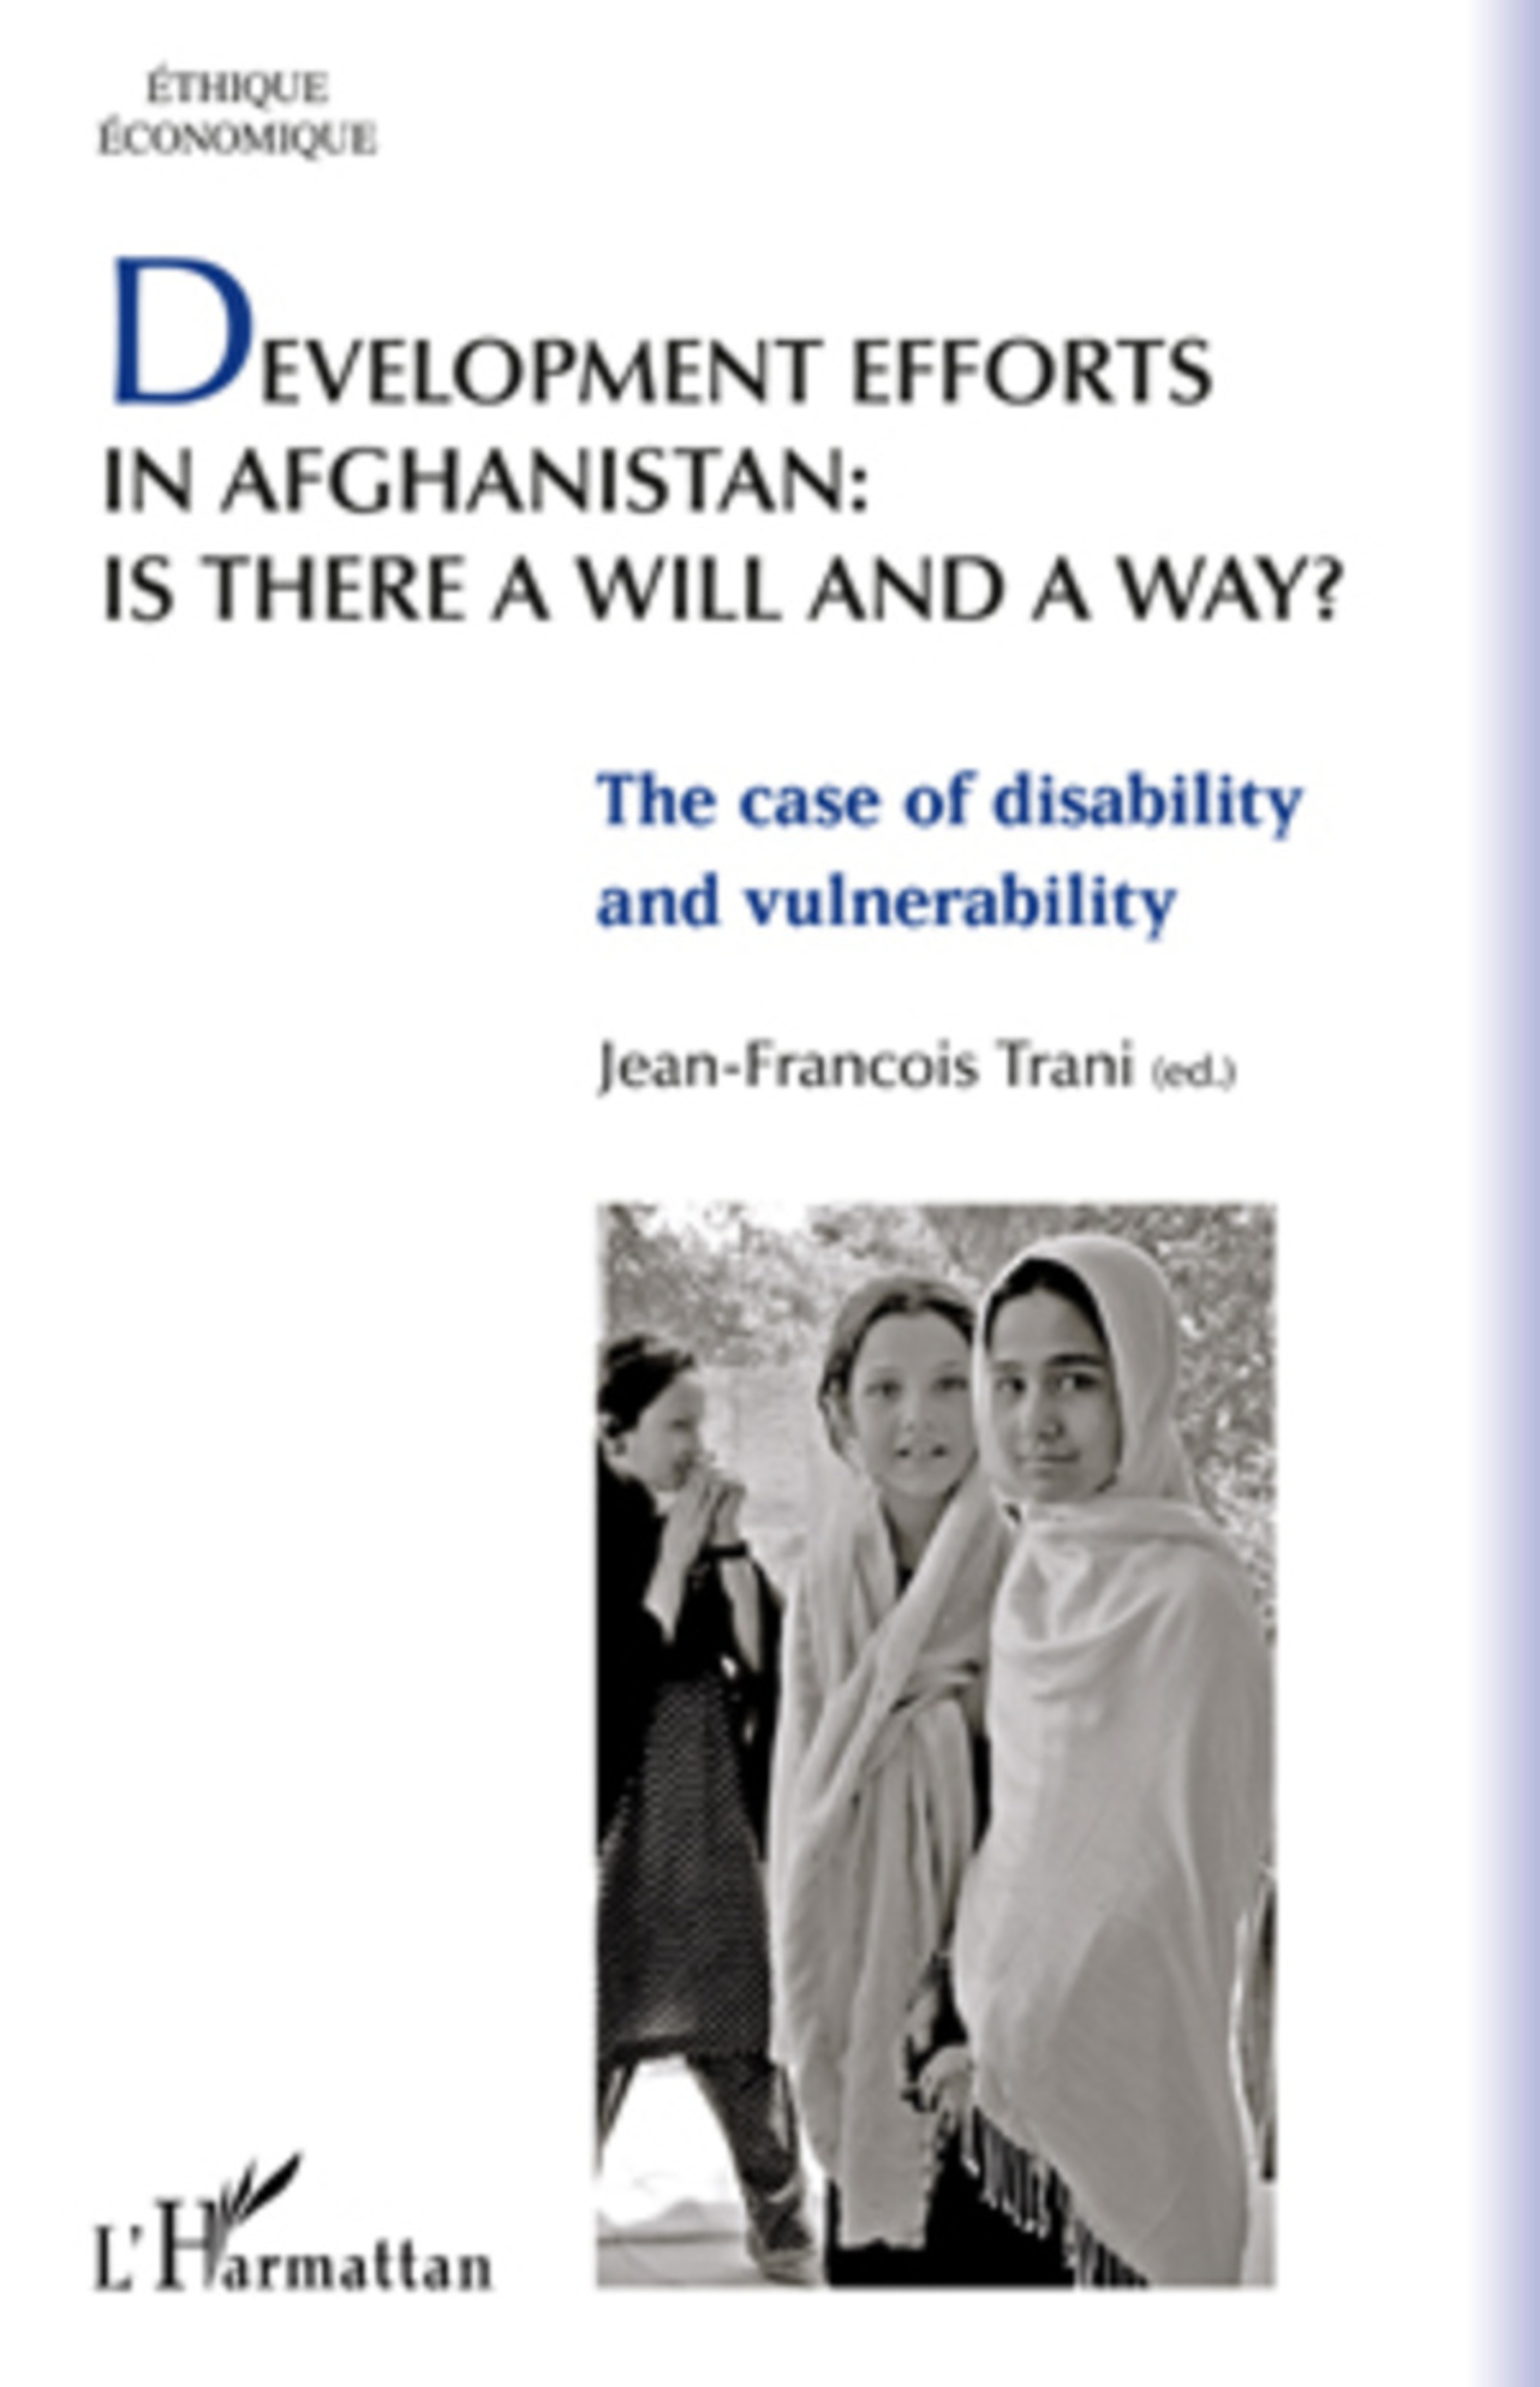 Development efforts in Afghanistan: is there a will and a way ?